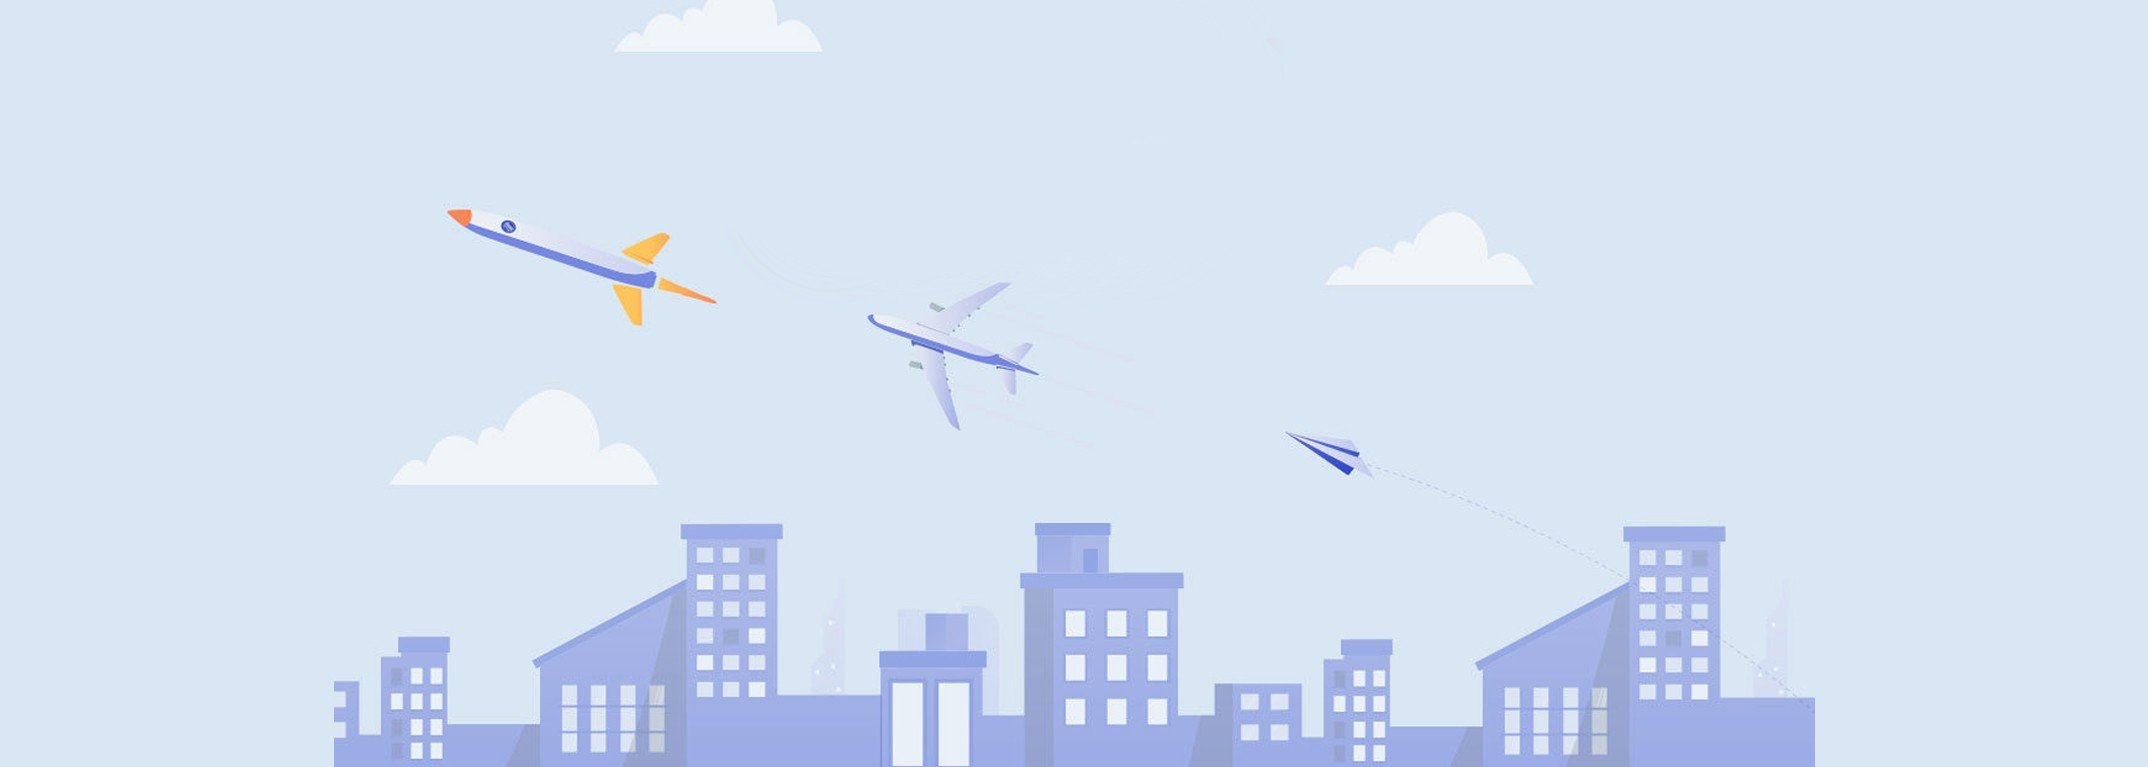 rocket, airplane, and paper plane flying over cityscape